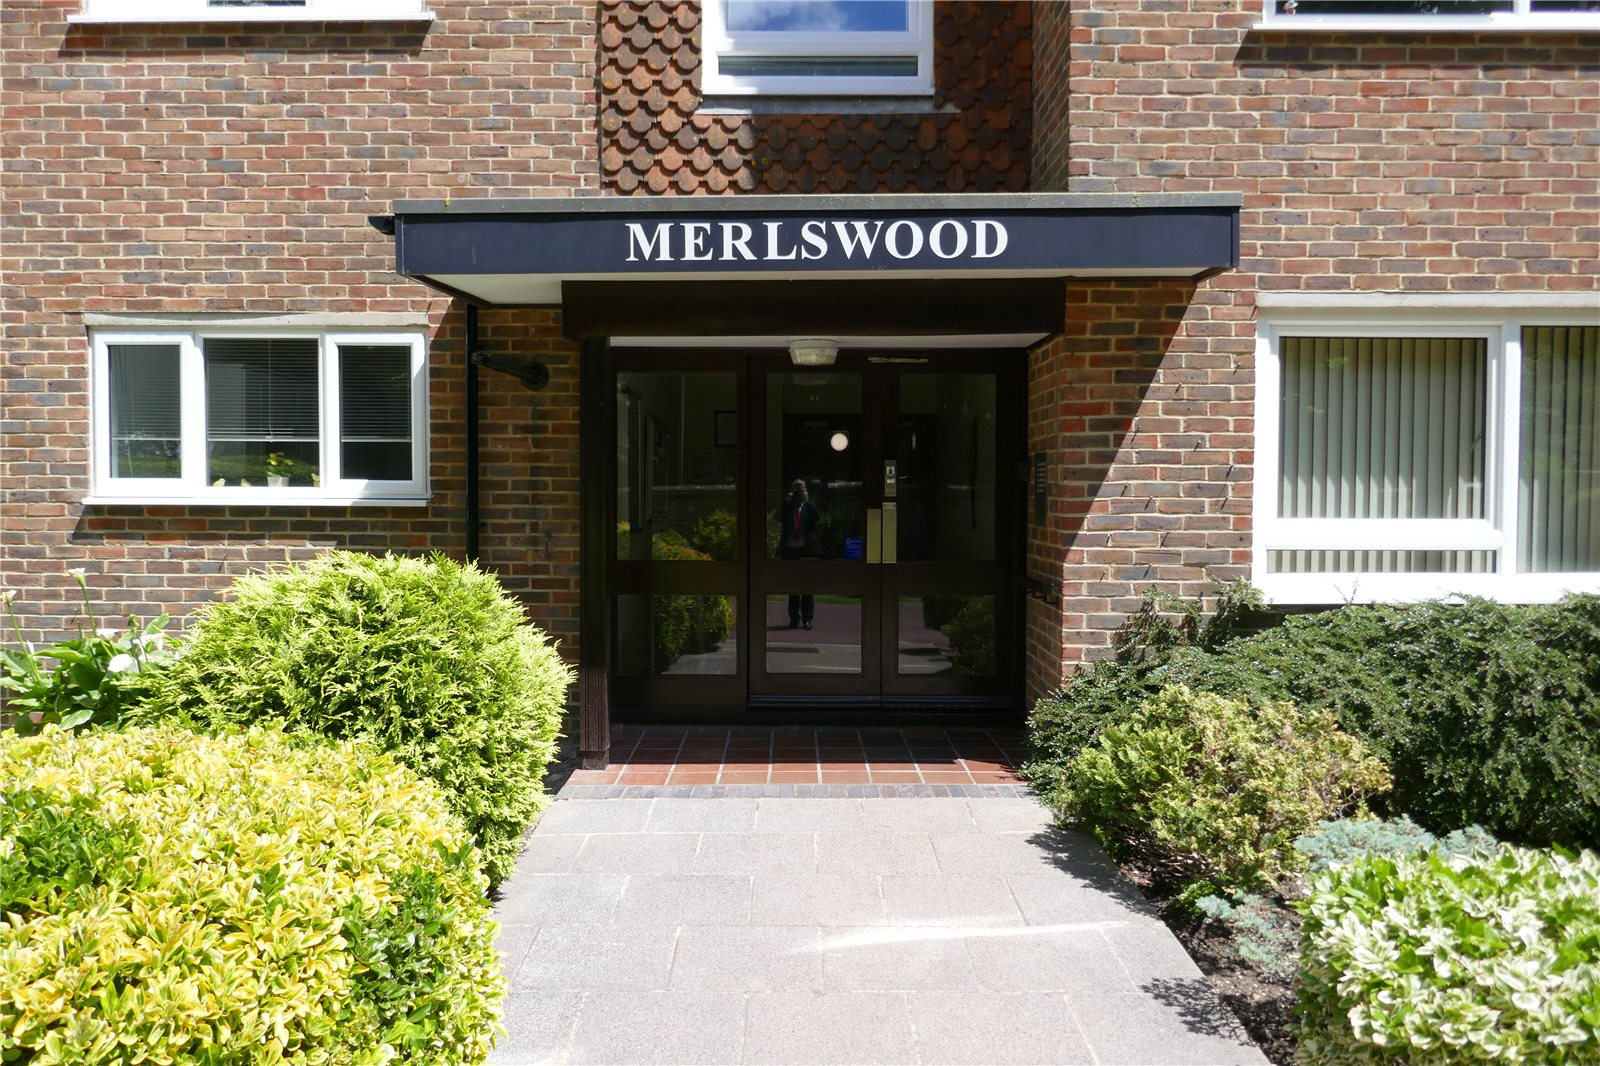 Merlswood, Meads Road